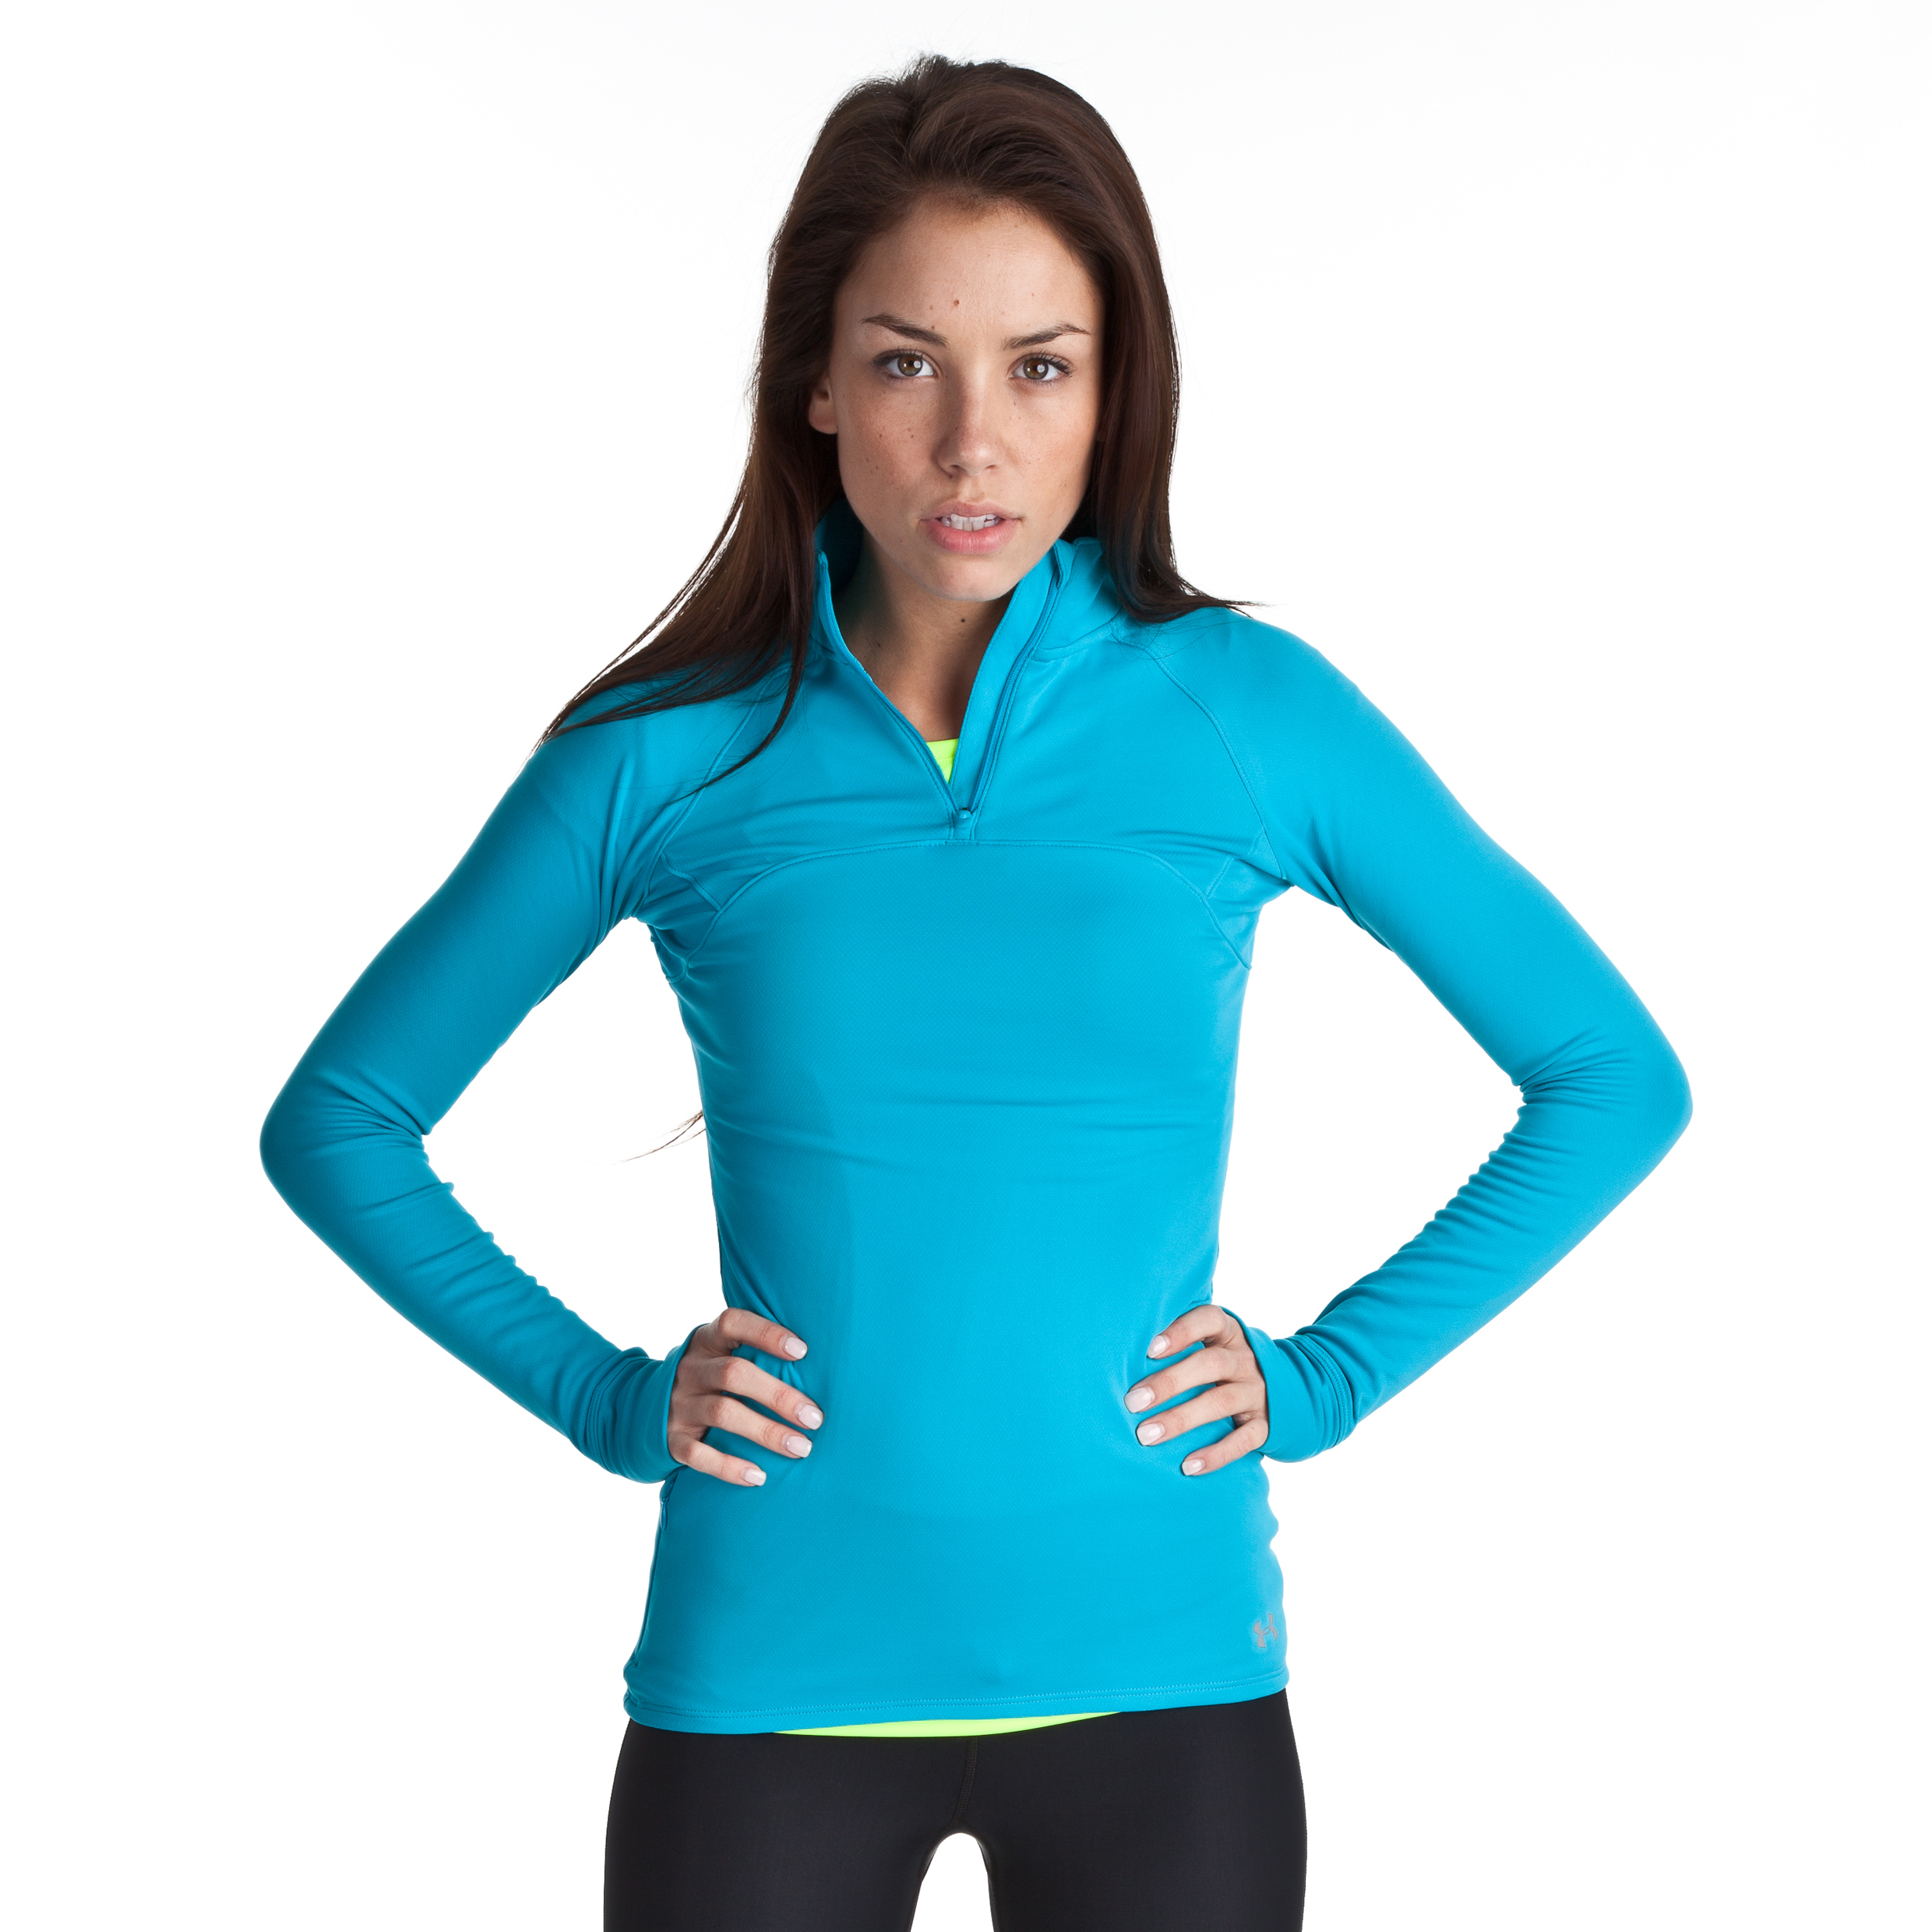 Under Armour Escape 1/4 Zip III - Deceit/Reflective - Womens